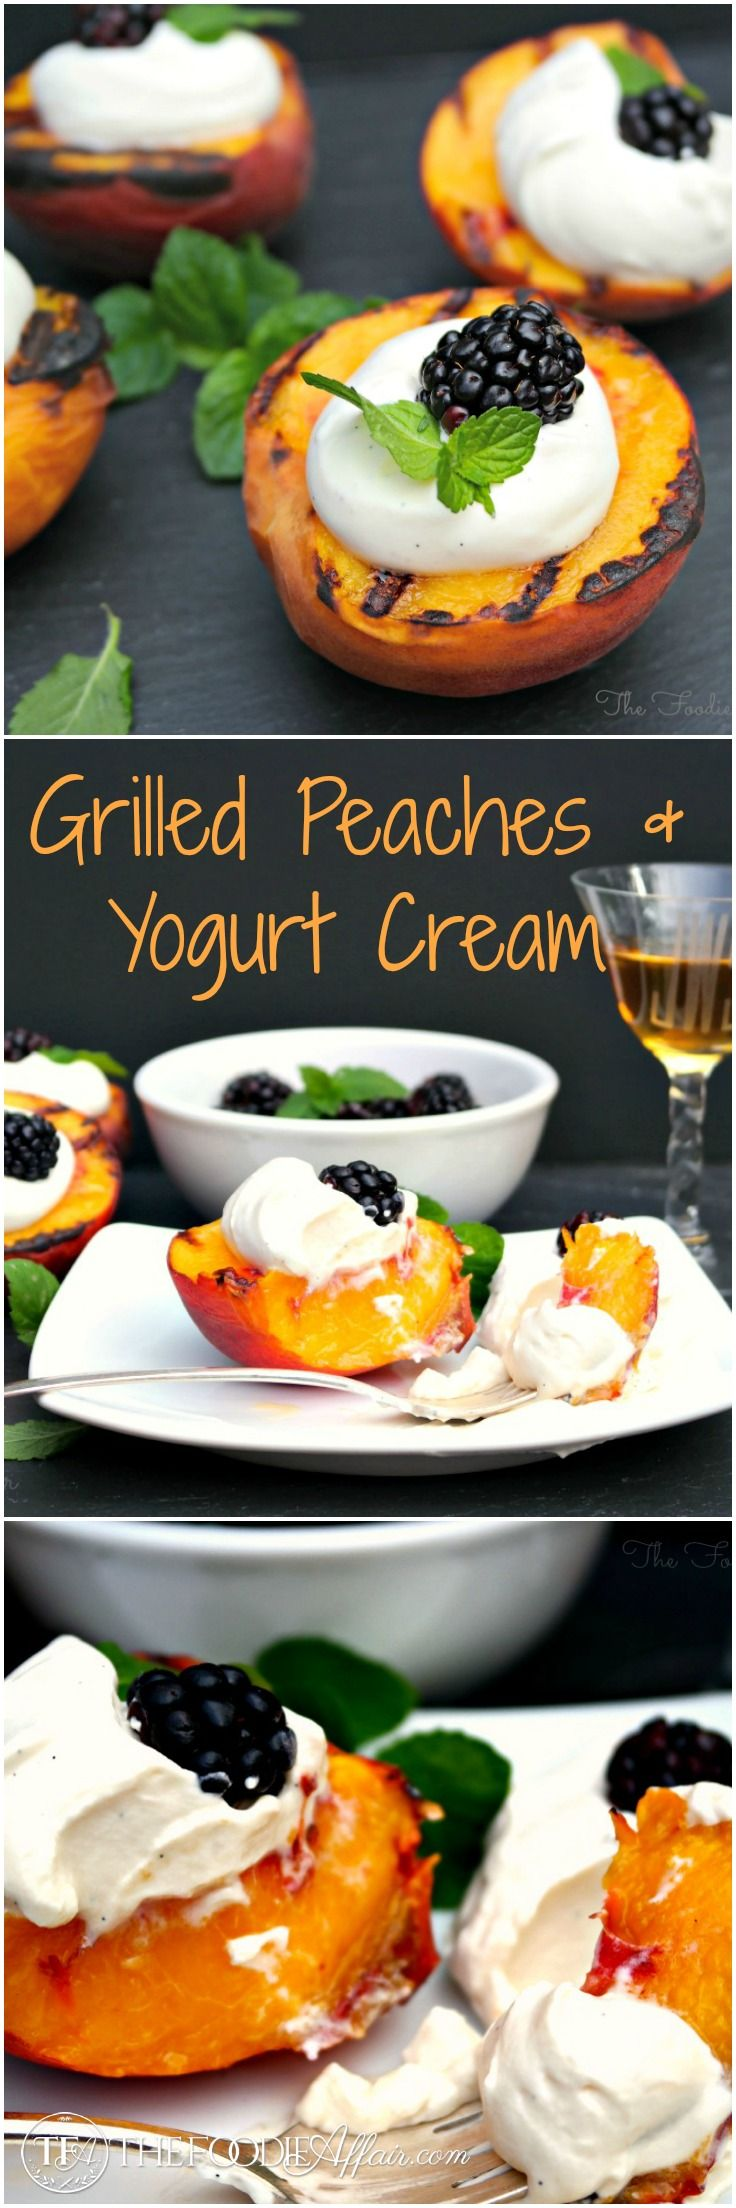 Grilled Peaches and Yogurt Cream with specks of vanilla bean seeds scattered in the yogurt and whipped cream.